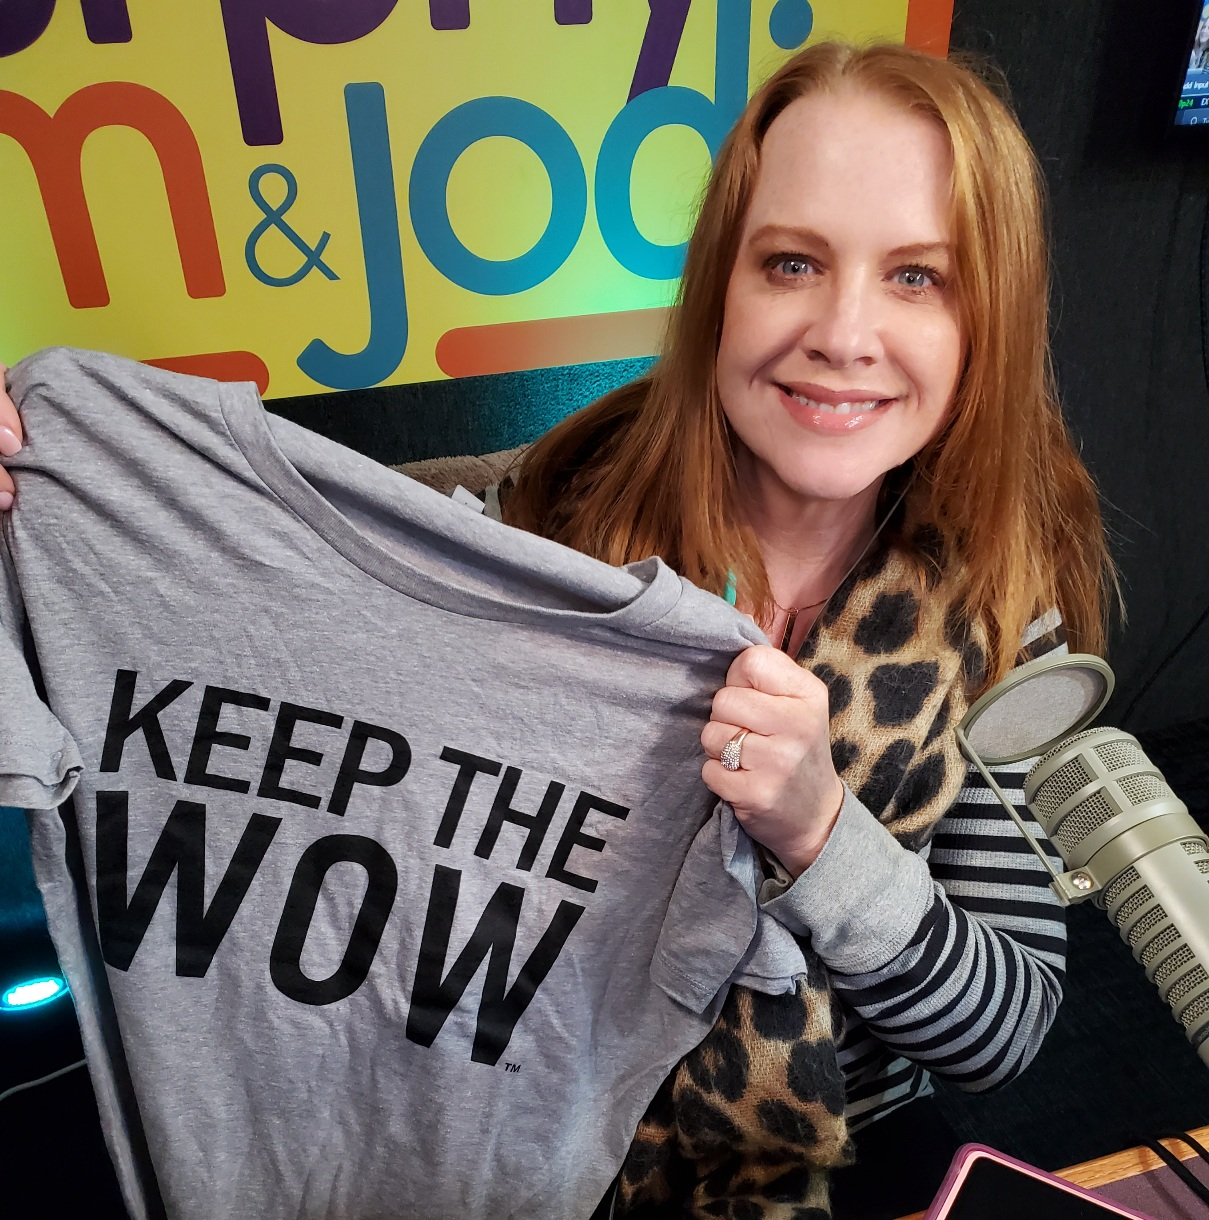 Keep the Wow!  It's Jodi's Motto, so what does it mean?